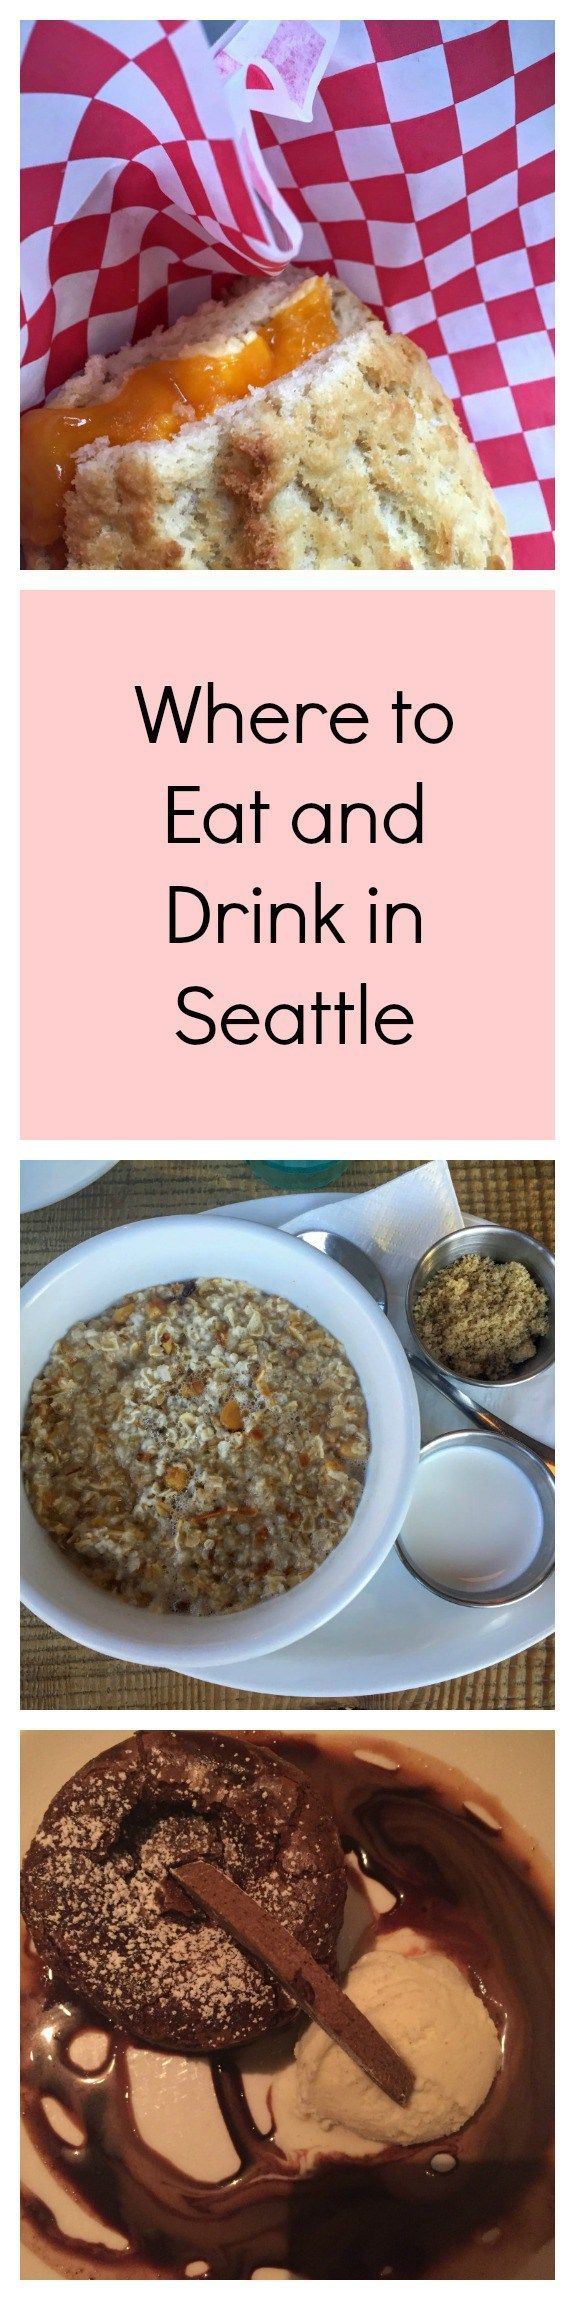 Where to Eat and Drink in Seattle